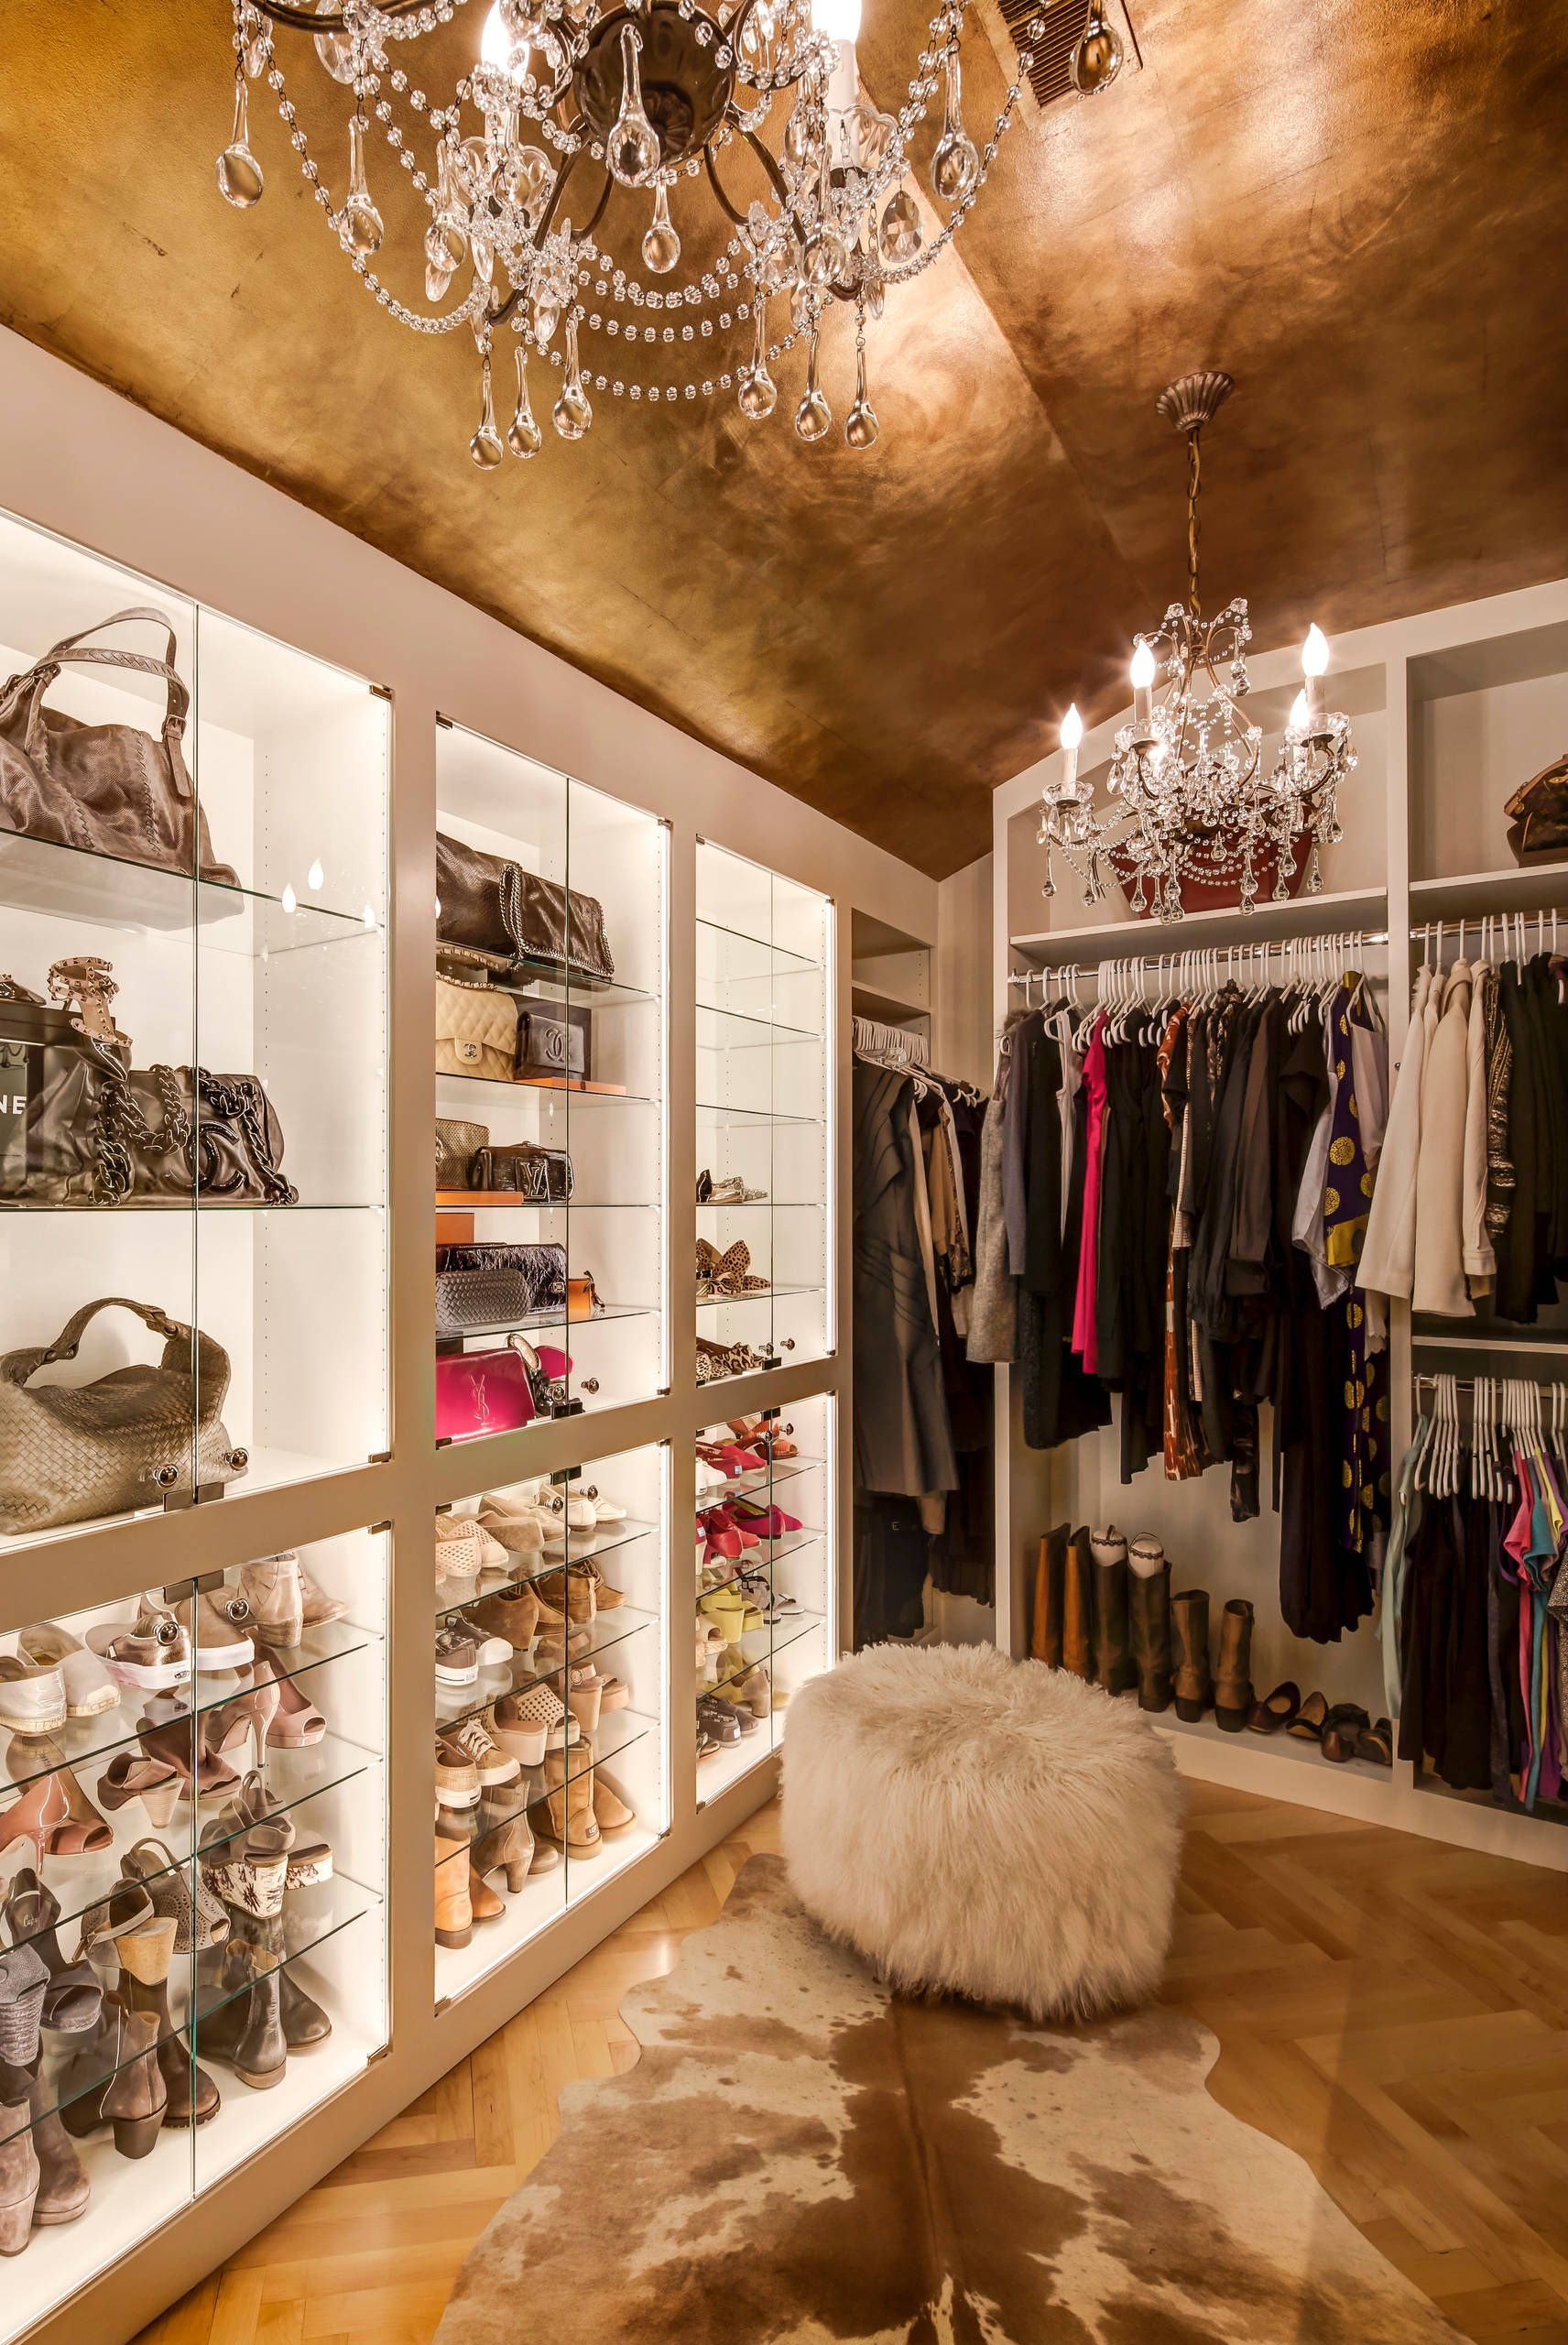 7 Steps To Your Own Kylie Jenner Inspired Glam Room Closet DesignsKylie